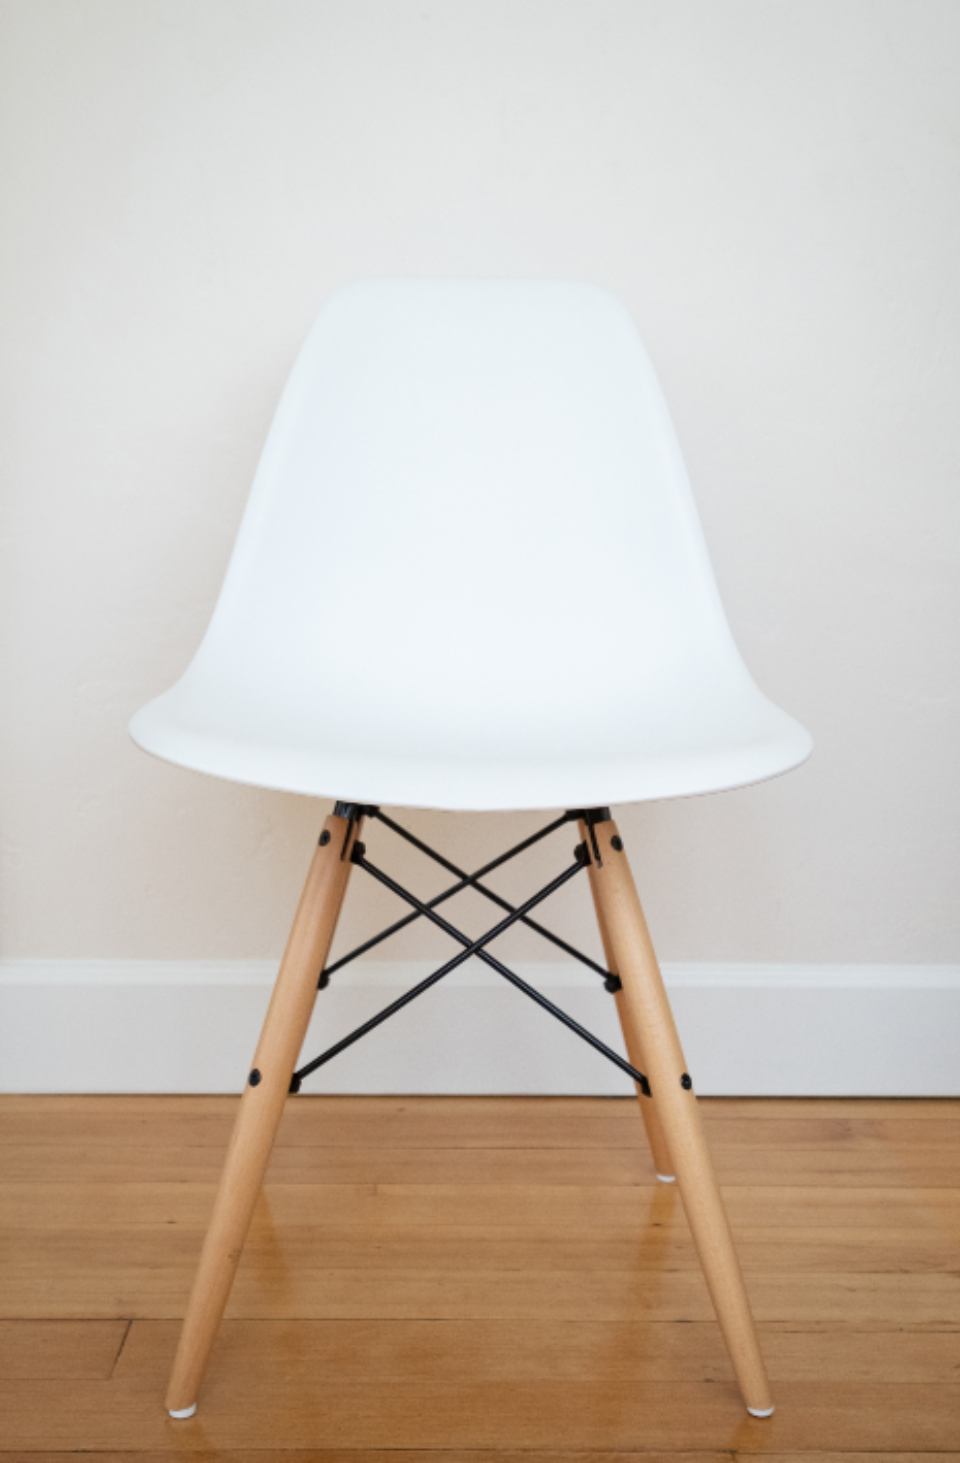 Free stock photo of interior chair